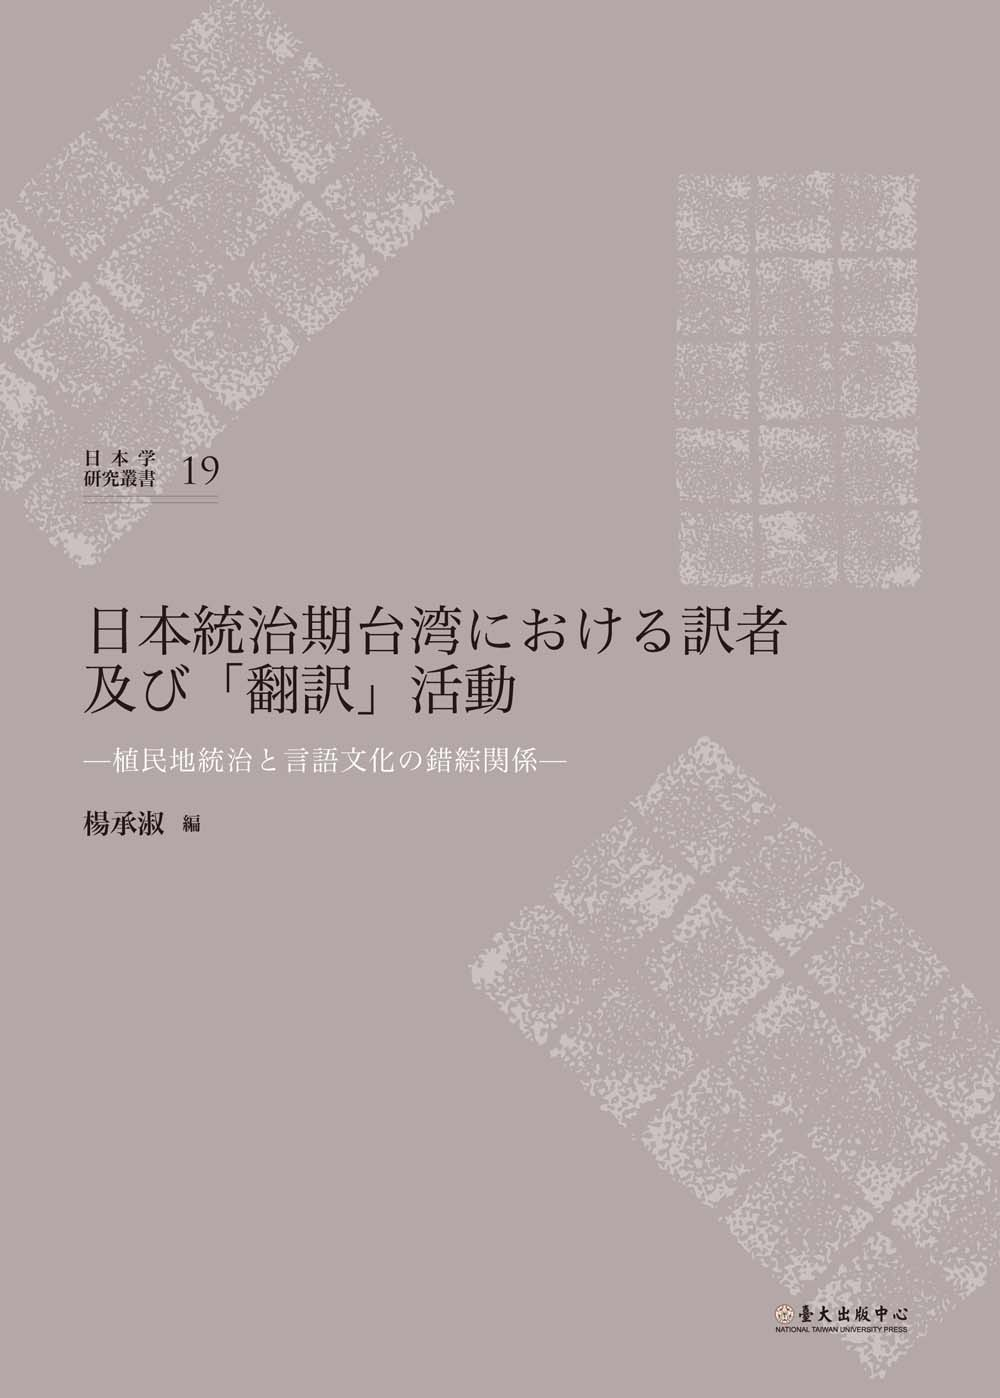 Translators and Translation Activities during the Period of Japanese Rule in Taiwan: The Complex Intersections between Colonialism, Language and Cultures